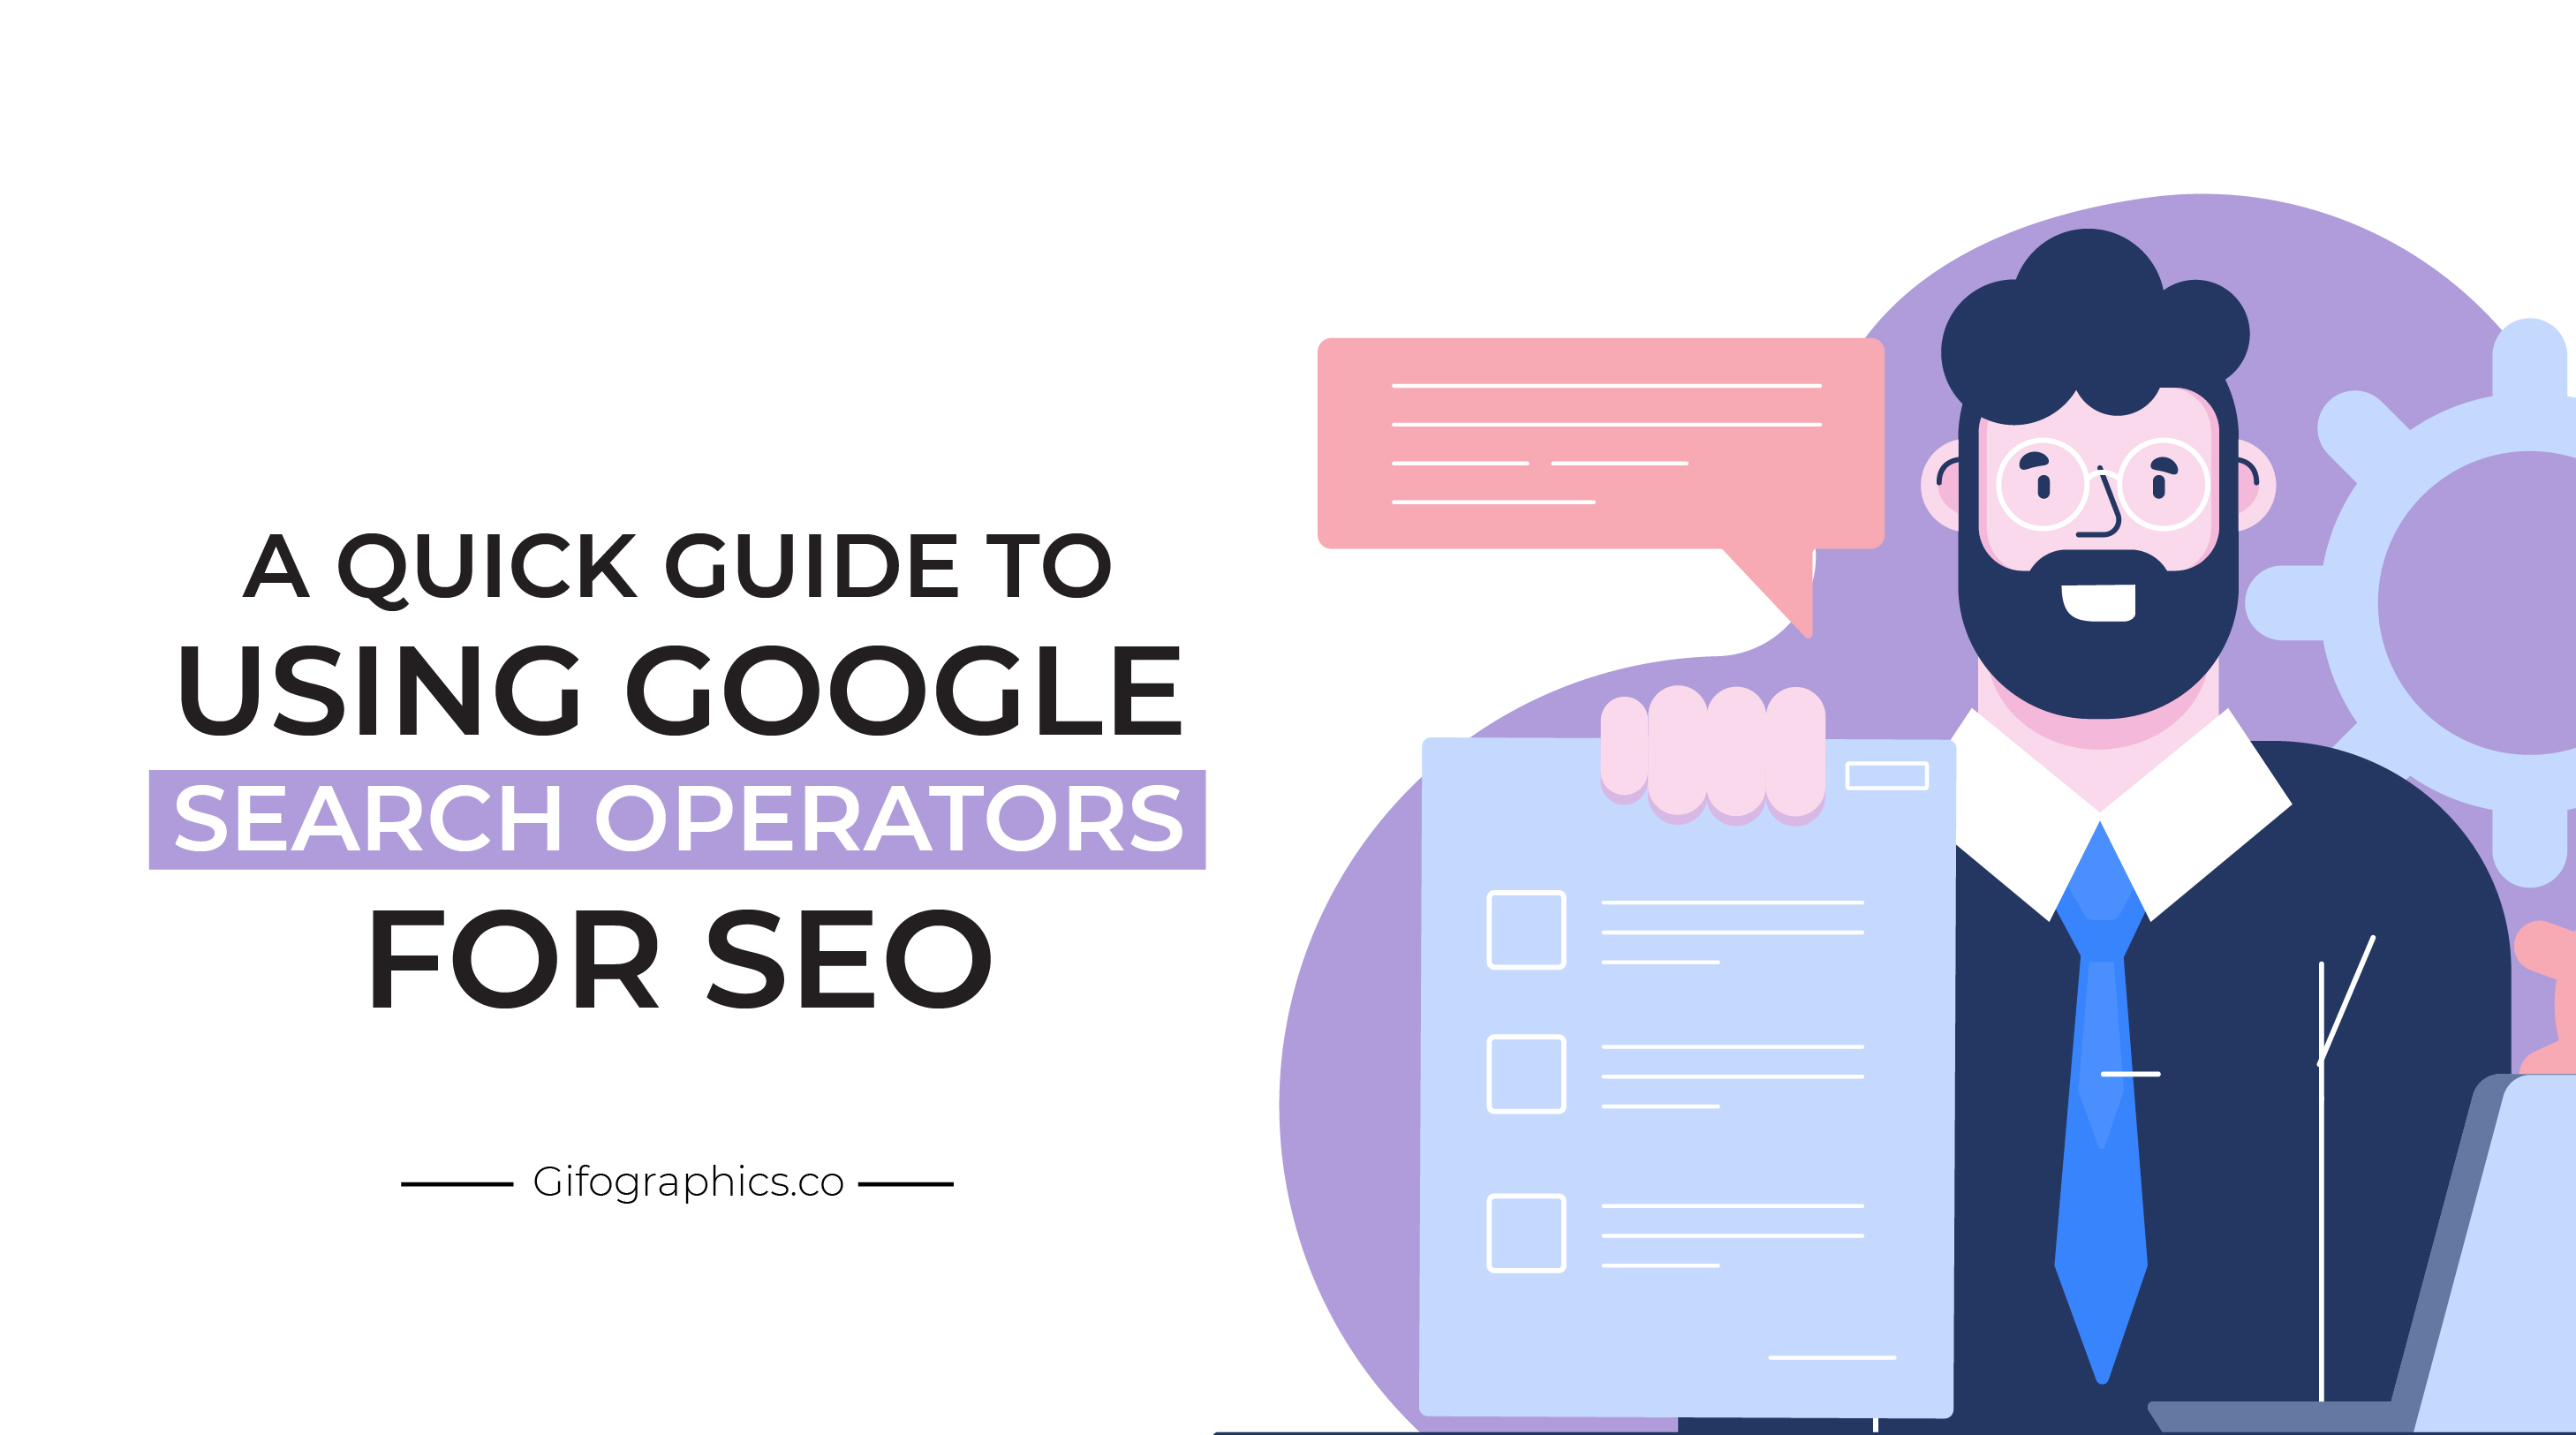 A Quick Guide to Using Google Search Operators for SEO